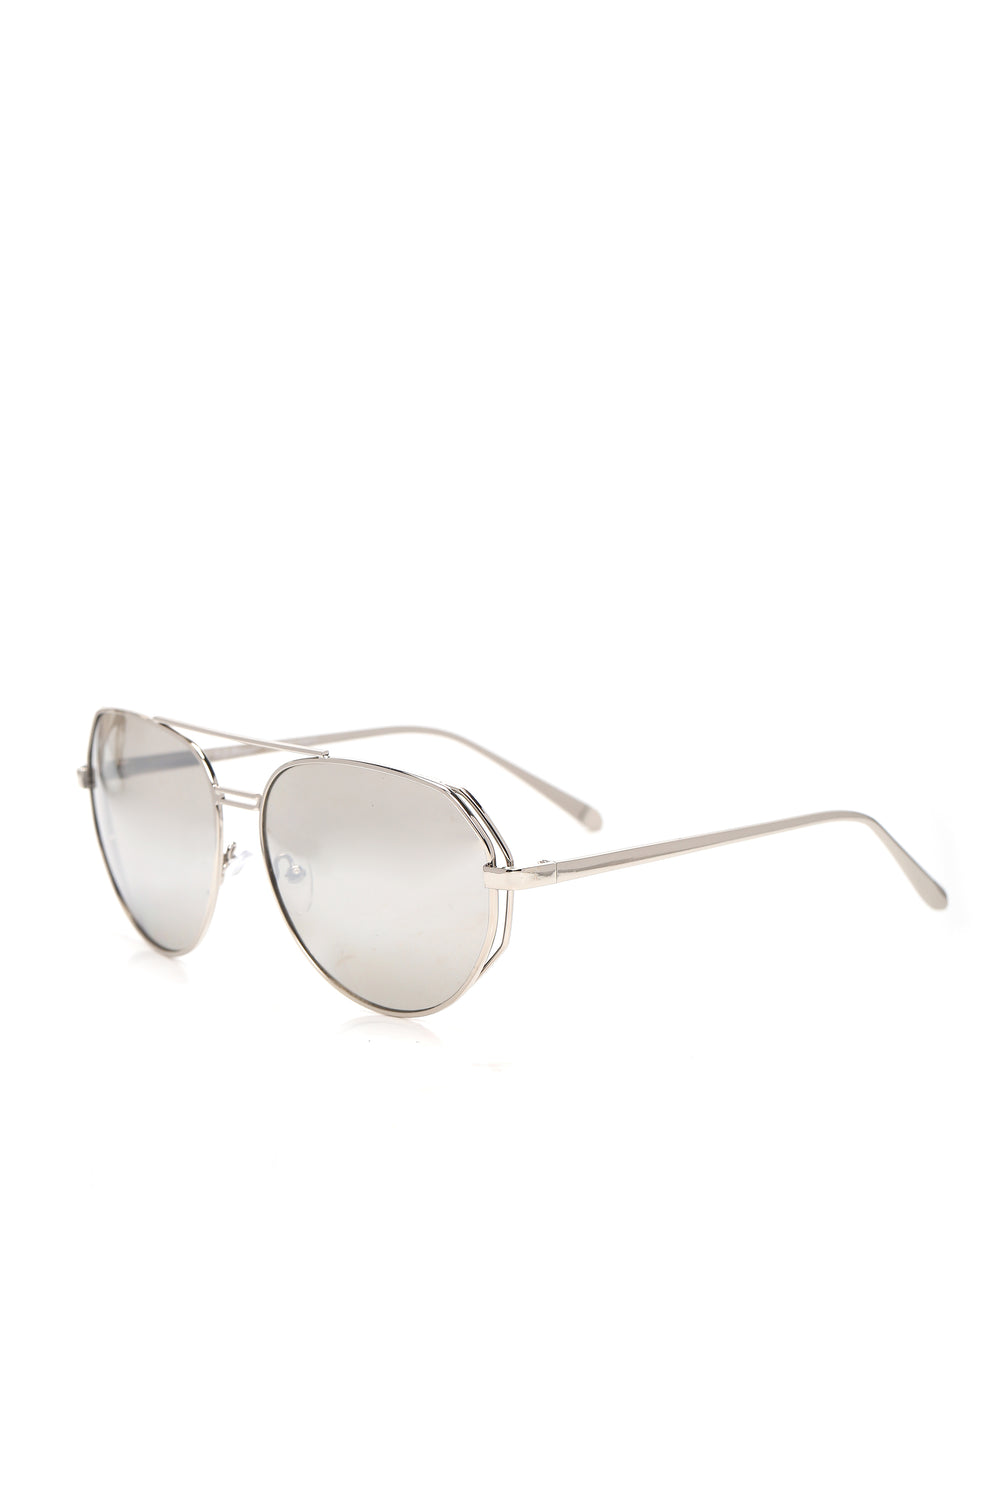 Steal A Kiss Sunglasses - Silver